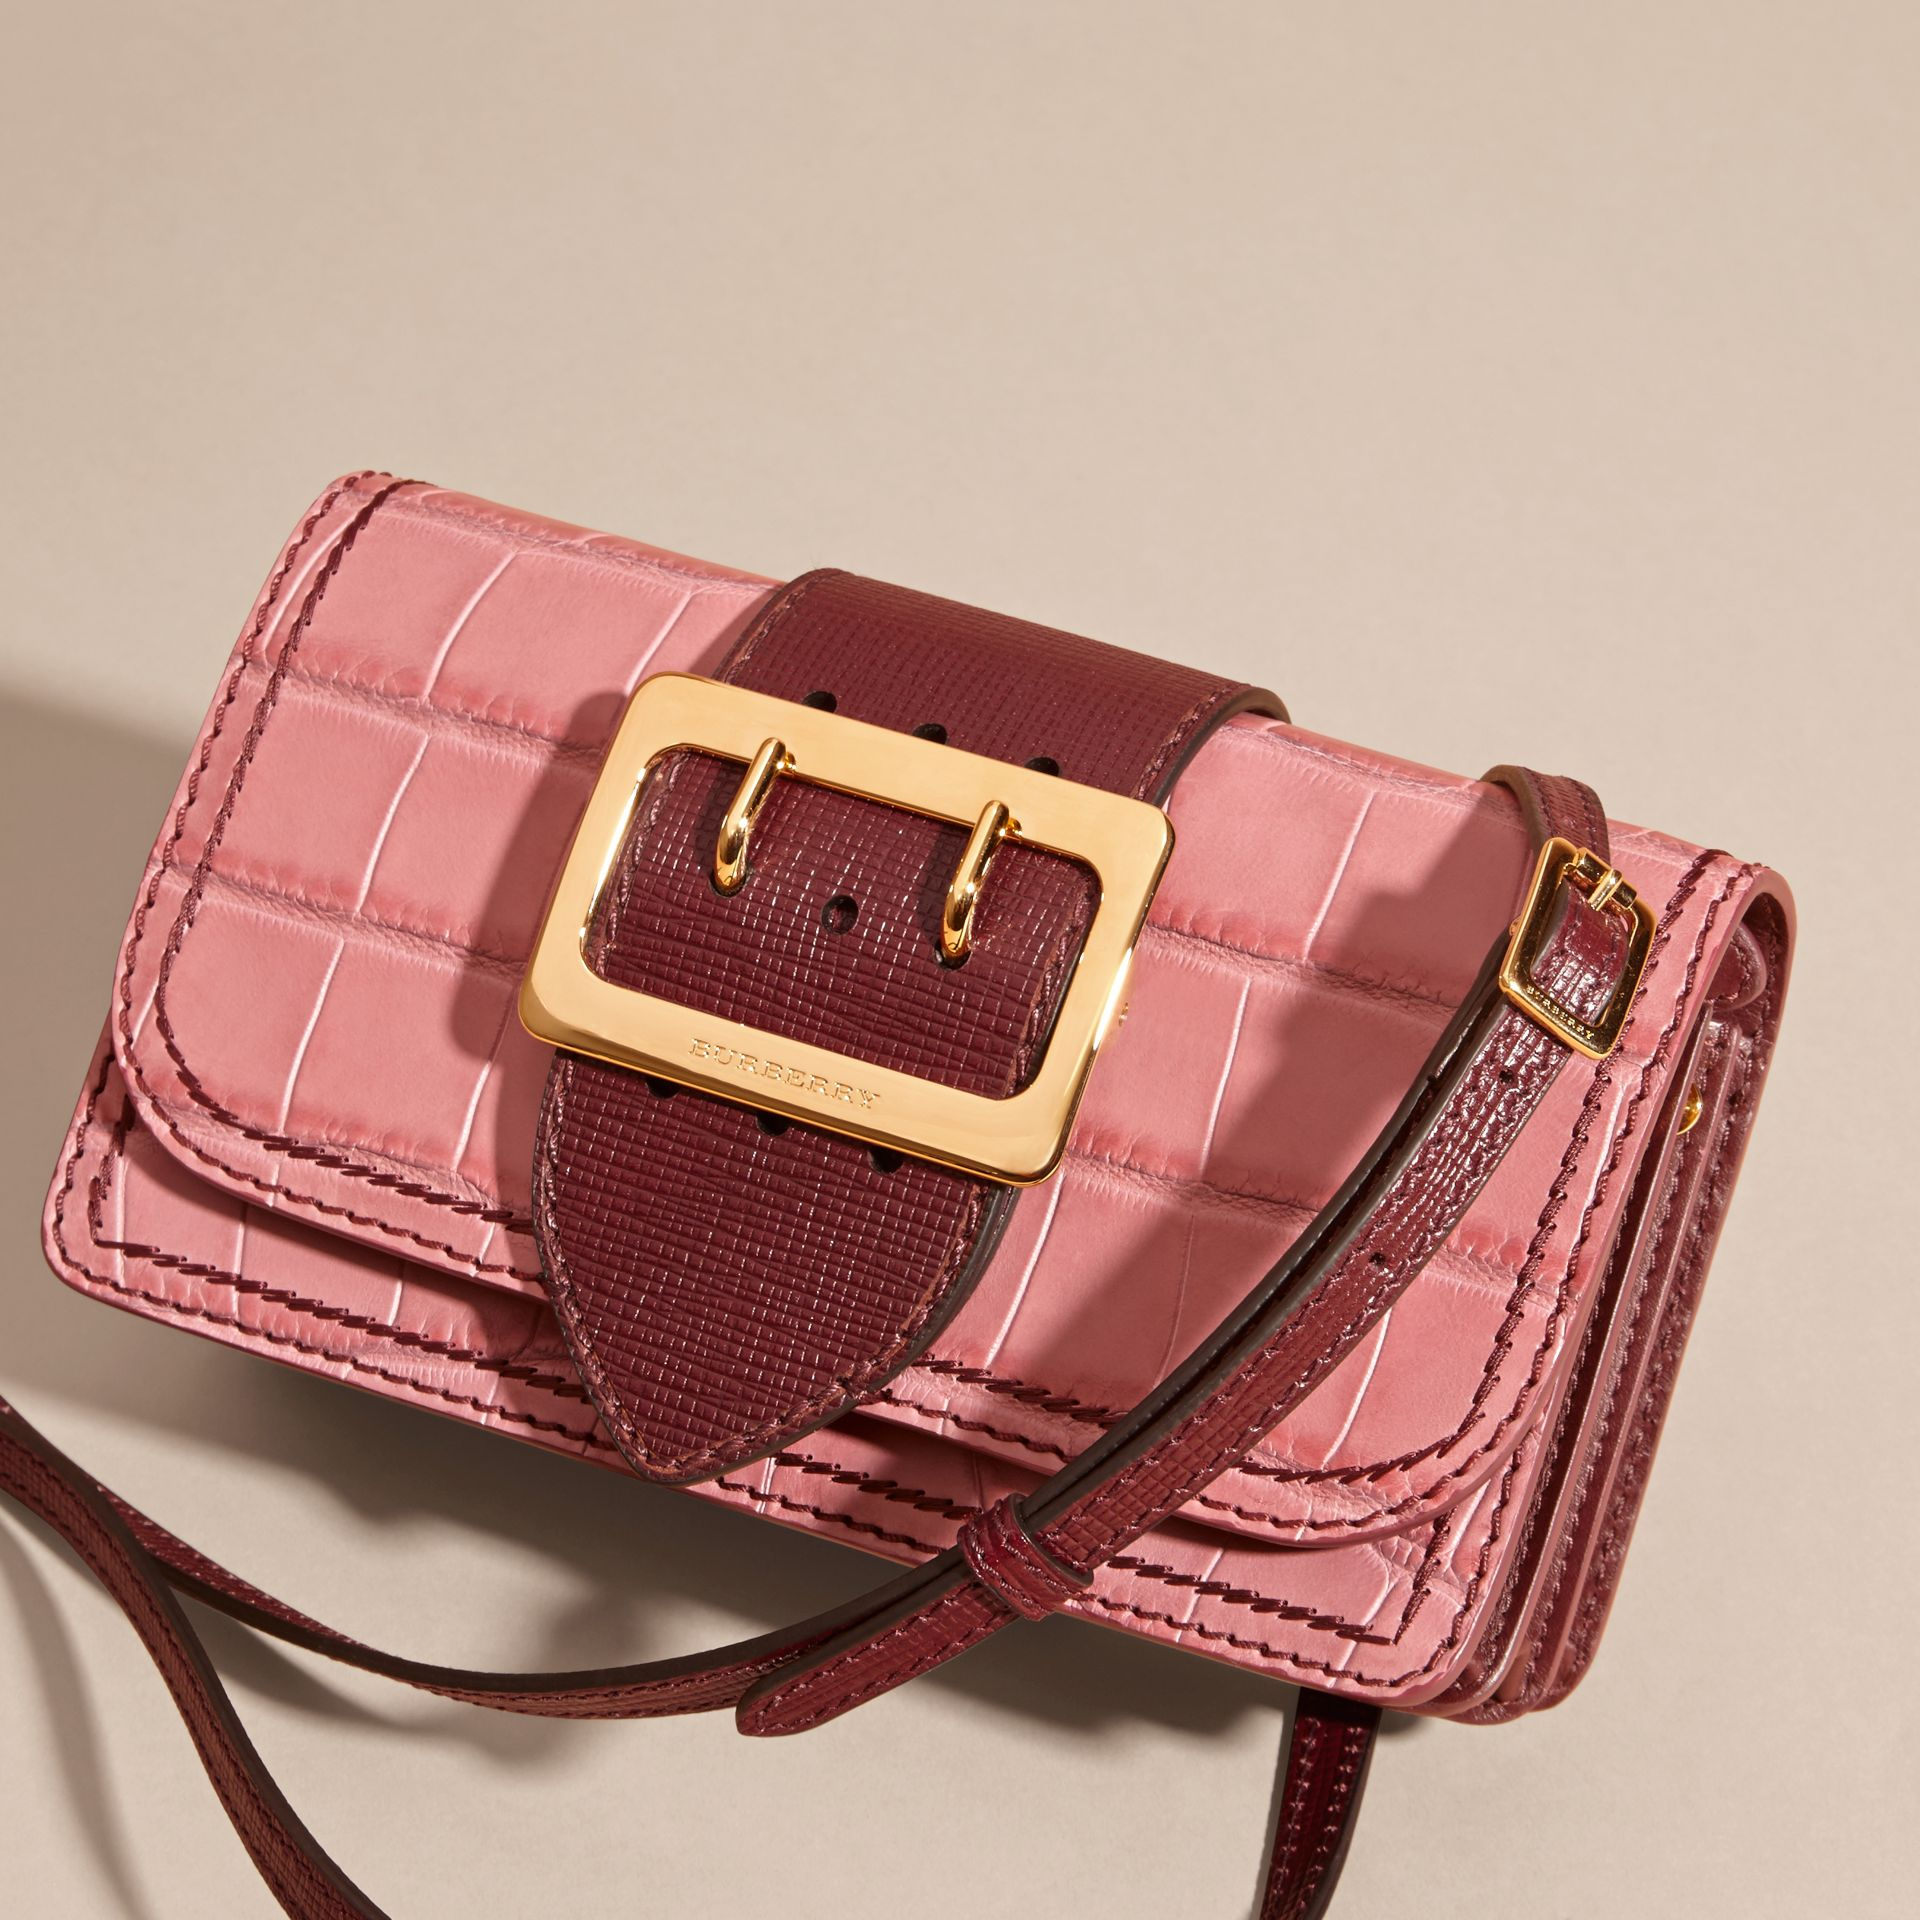 The Small Buckle Bag in Alligator and Leather in Dusky Pink/ Burgundy - Women | Burberry Australia - gallery image 8